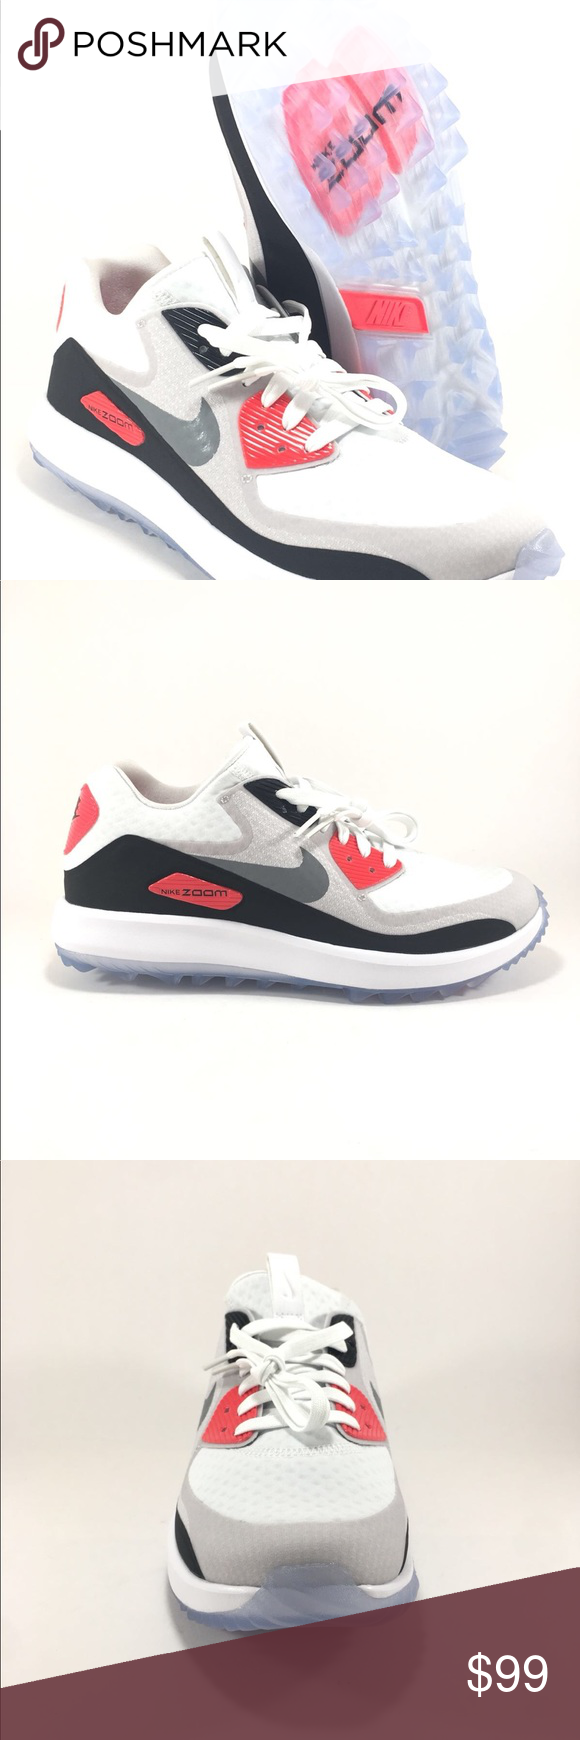 6101acc7159 Nike Air Zoom 90 IT Infrared Golf Shoes Women s 844648-100 Women s golf  shoes Infrared